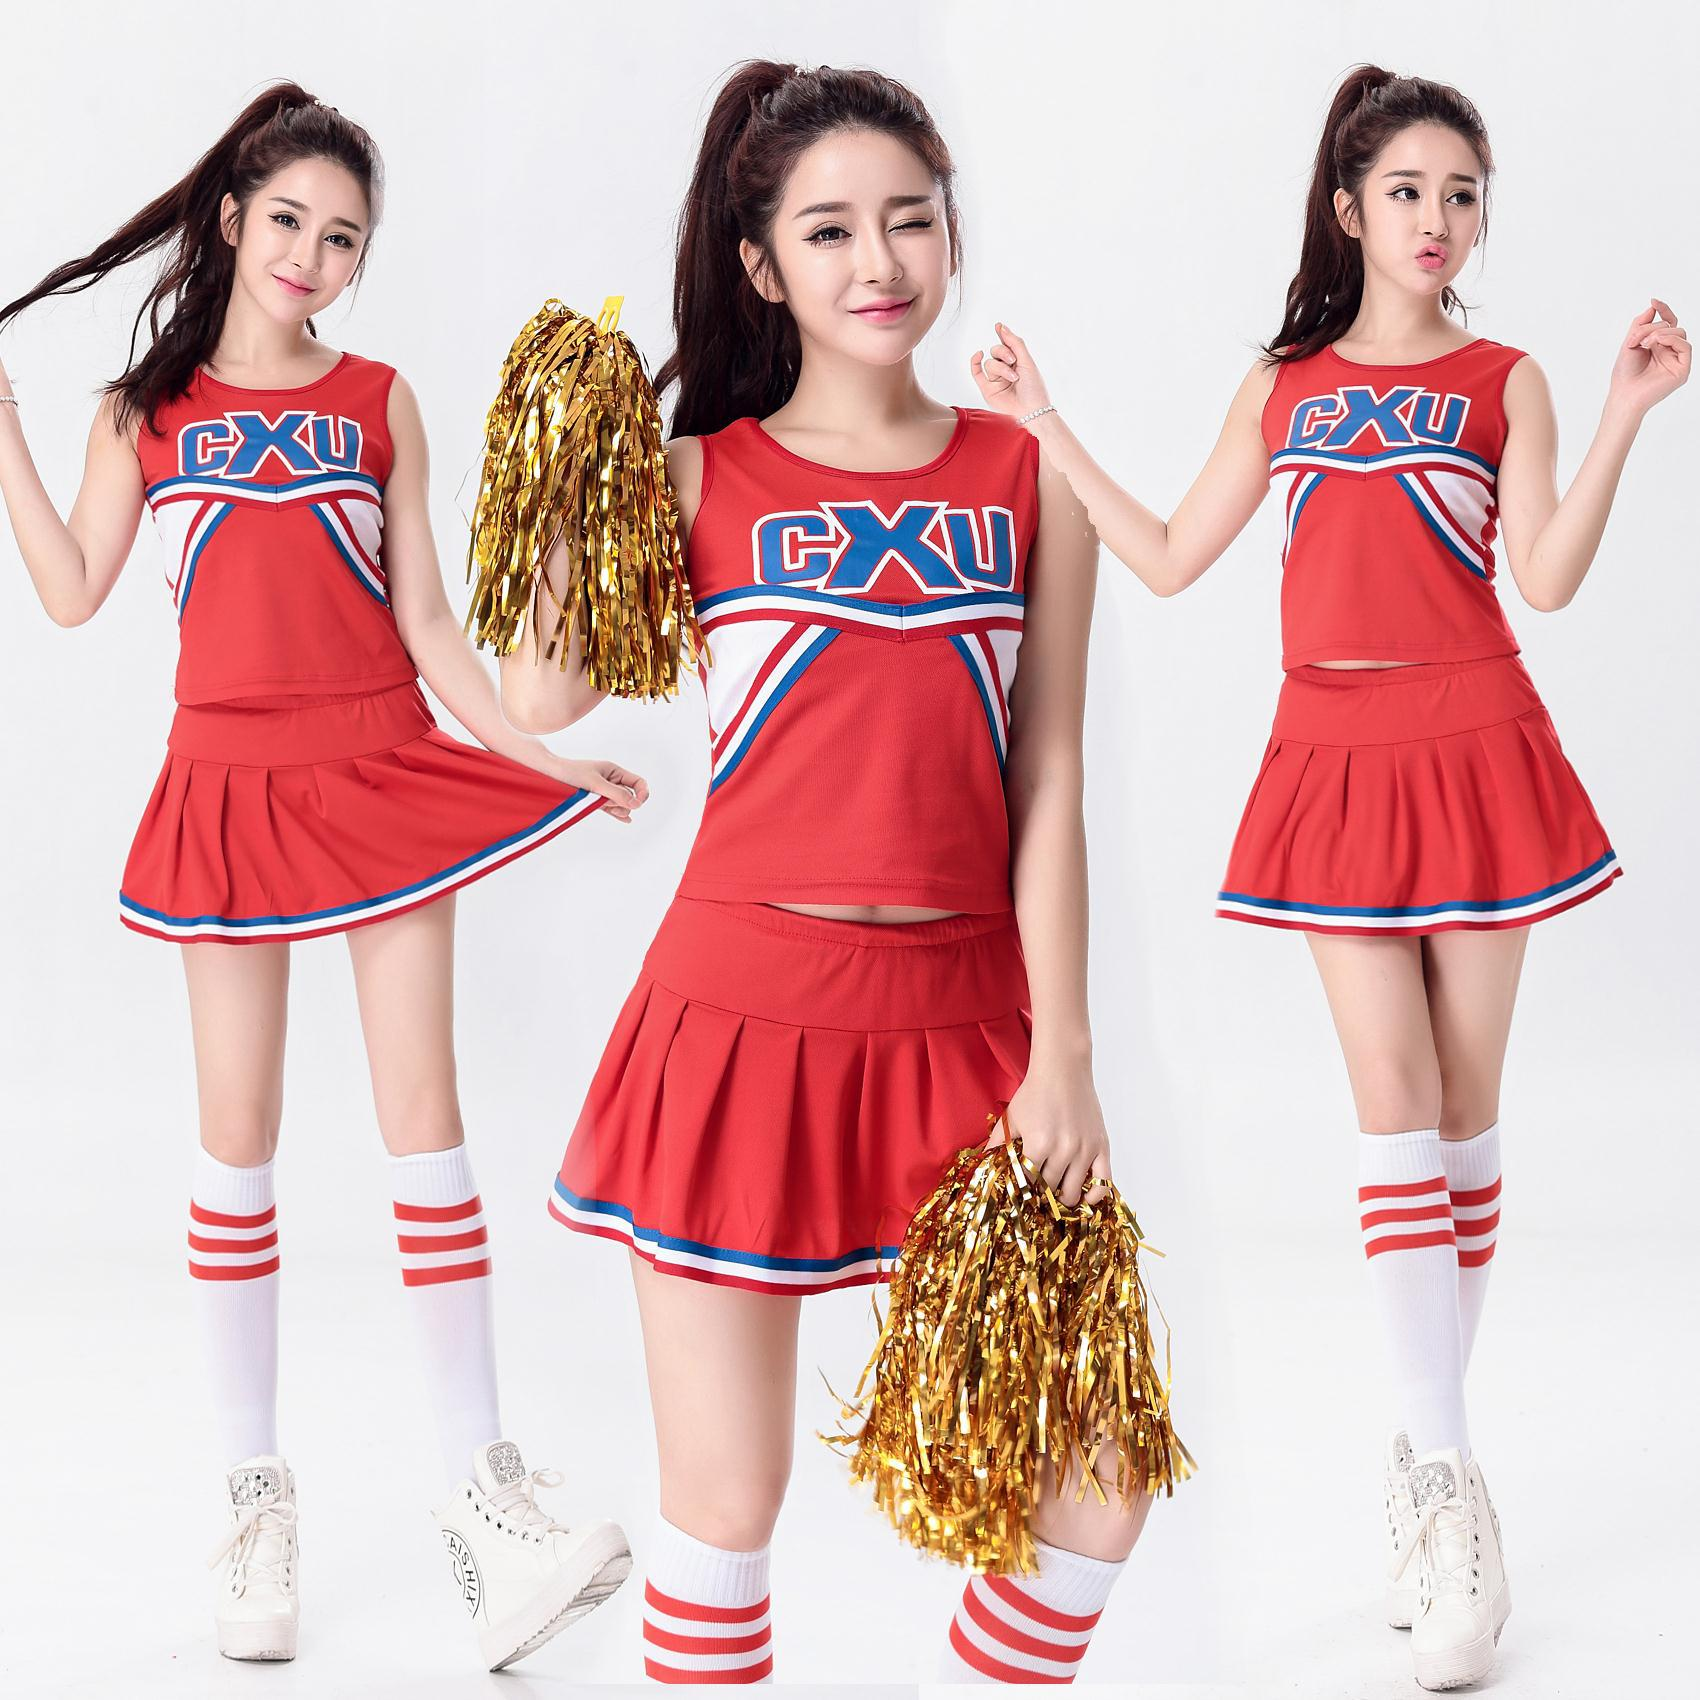 High School Girl Cheerleader Costume Cheer Uniform Cheerleading Dress Sexy School Girls Uniform Nihtclub Party Outfits Football